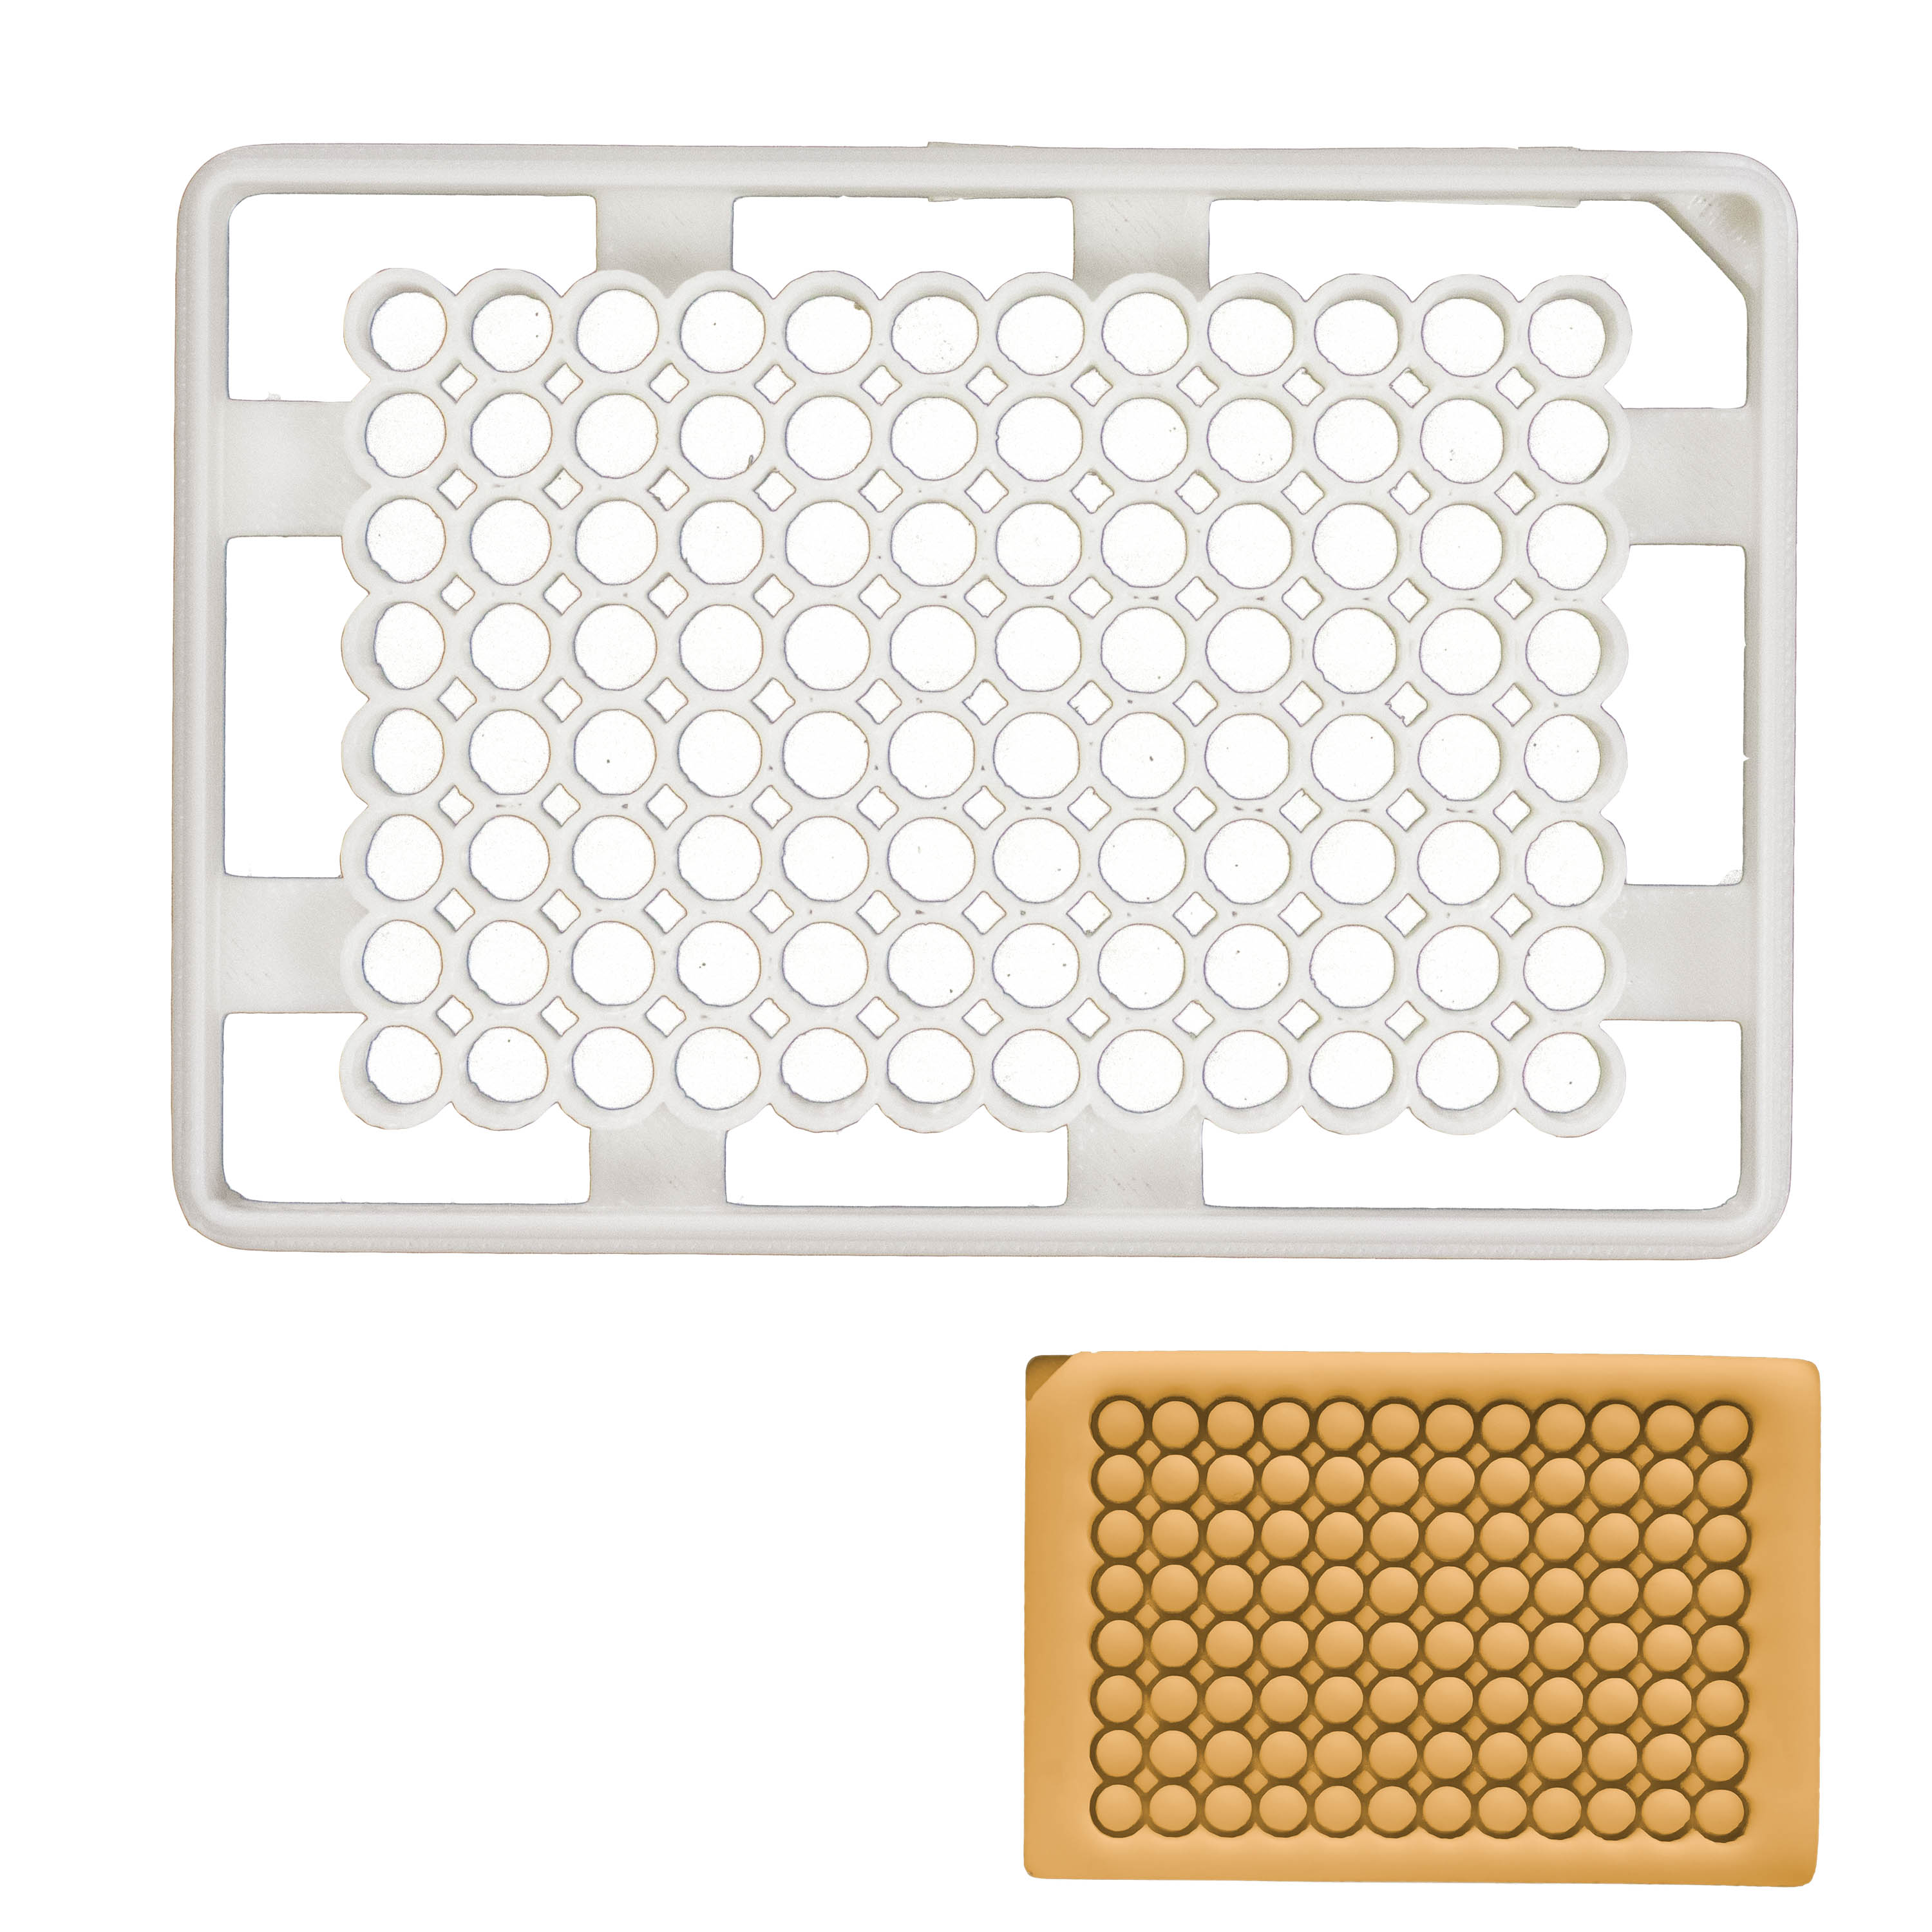 Laboratory 96 well plate cookie cutter